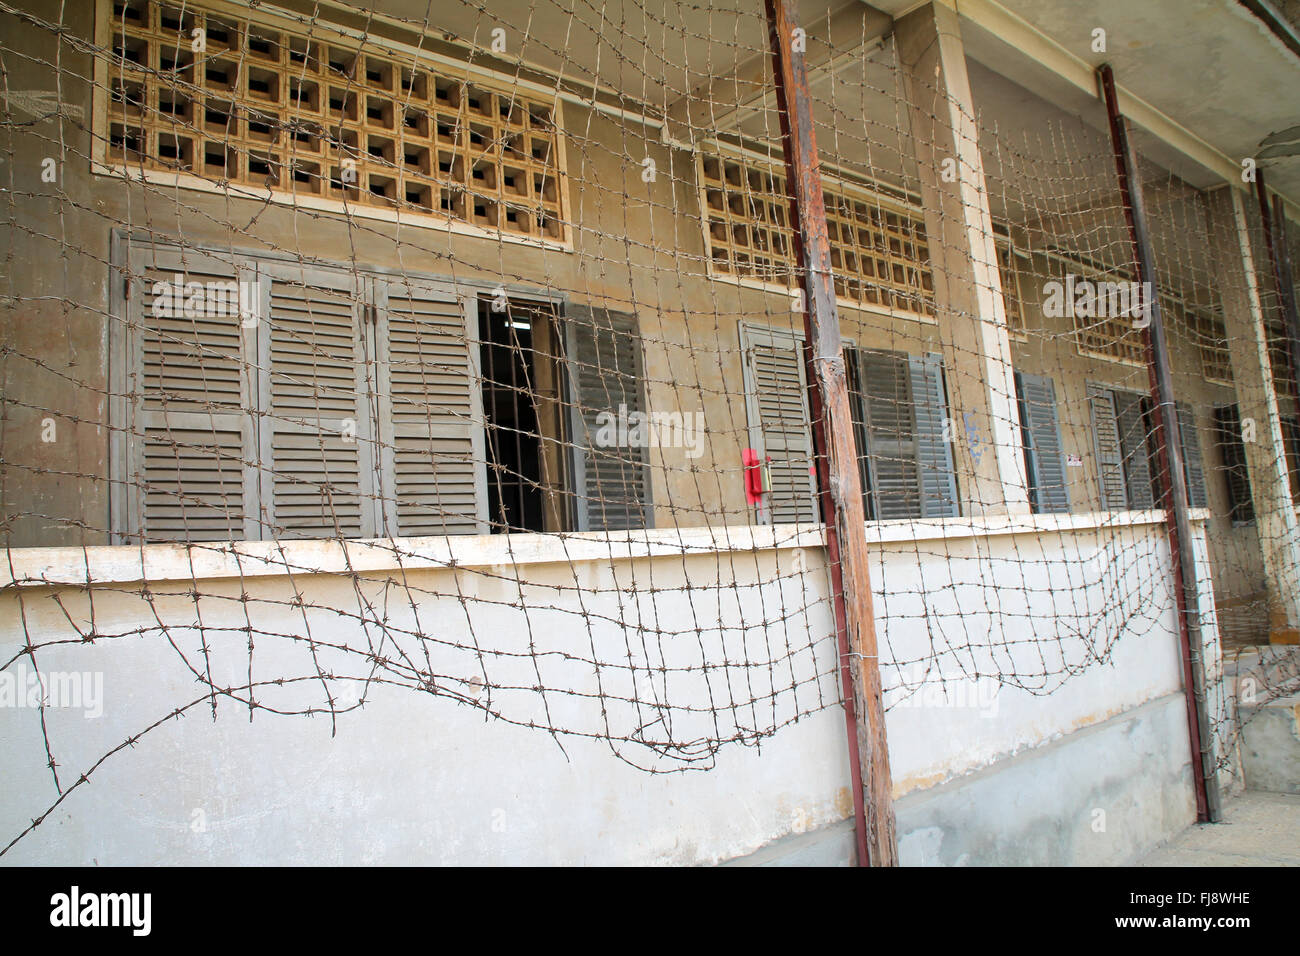 Prison entrance with barbed wire fence. - Stock Image